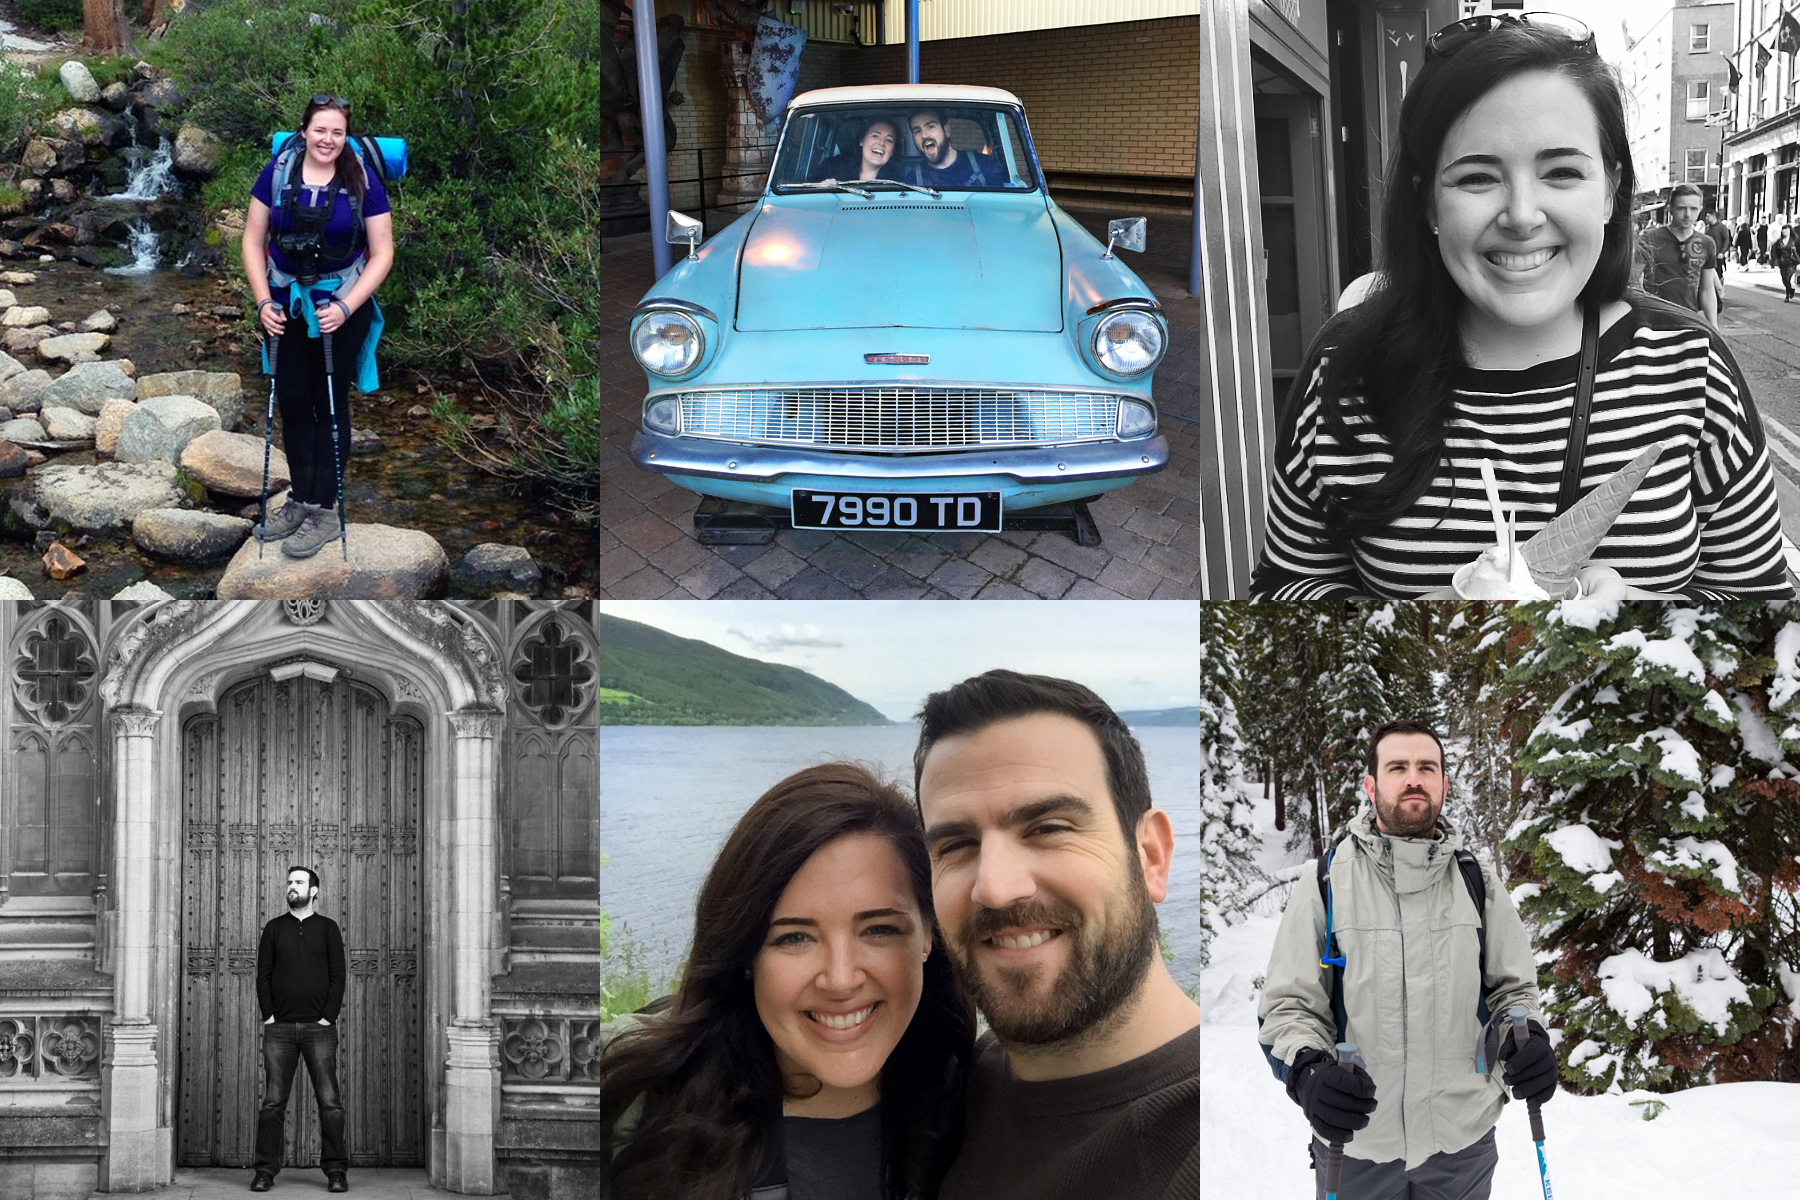 Couples-Travel-Blog-Bound-to-Explore-About